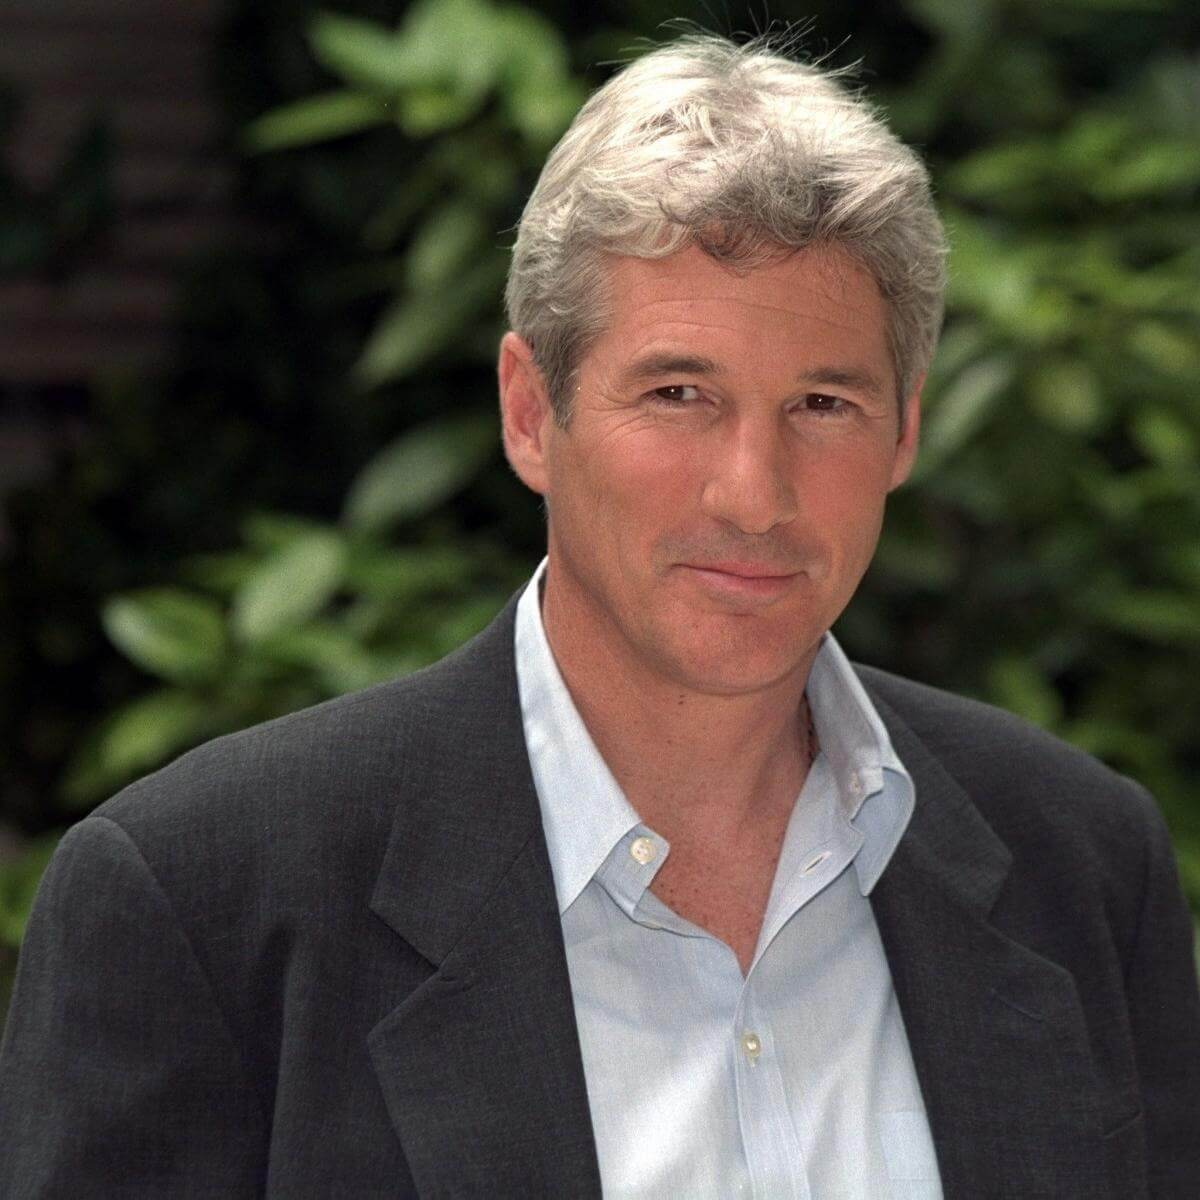 Richard Gere 20 Things You Didn't Know About Richard Gere